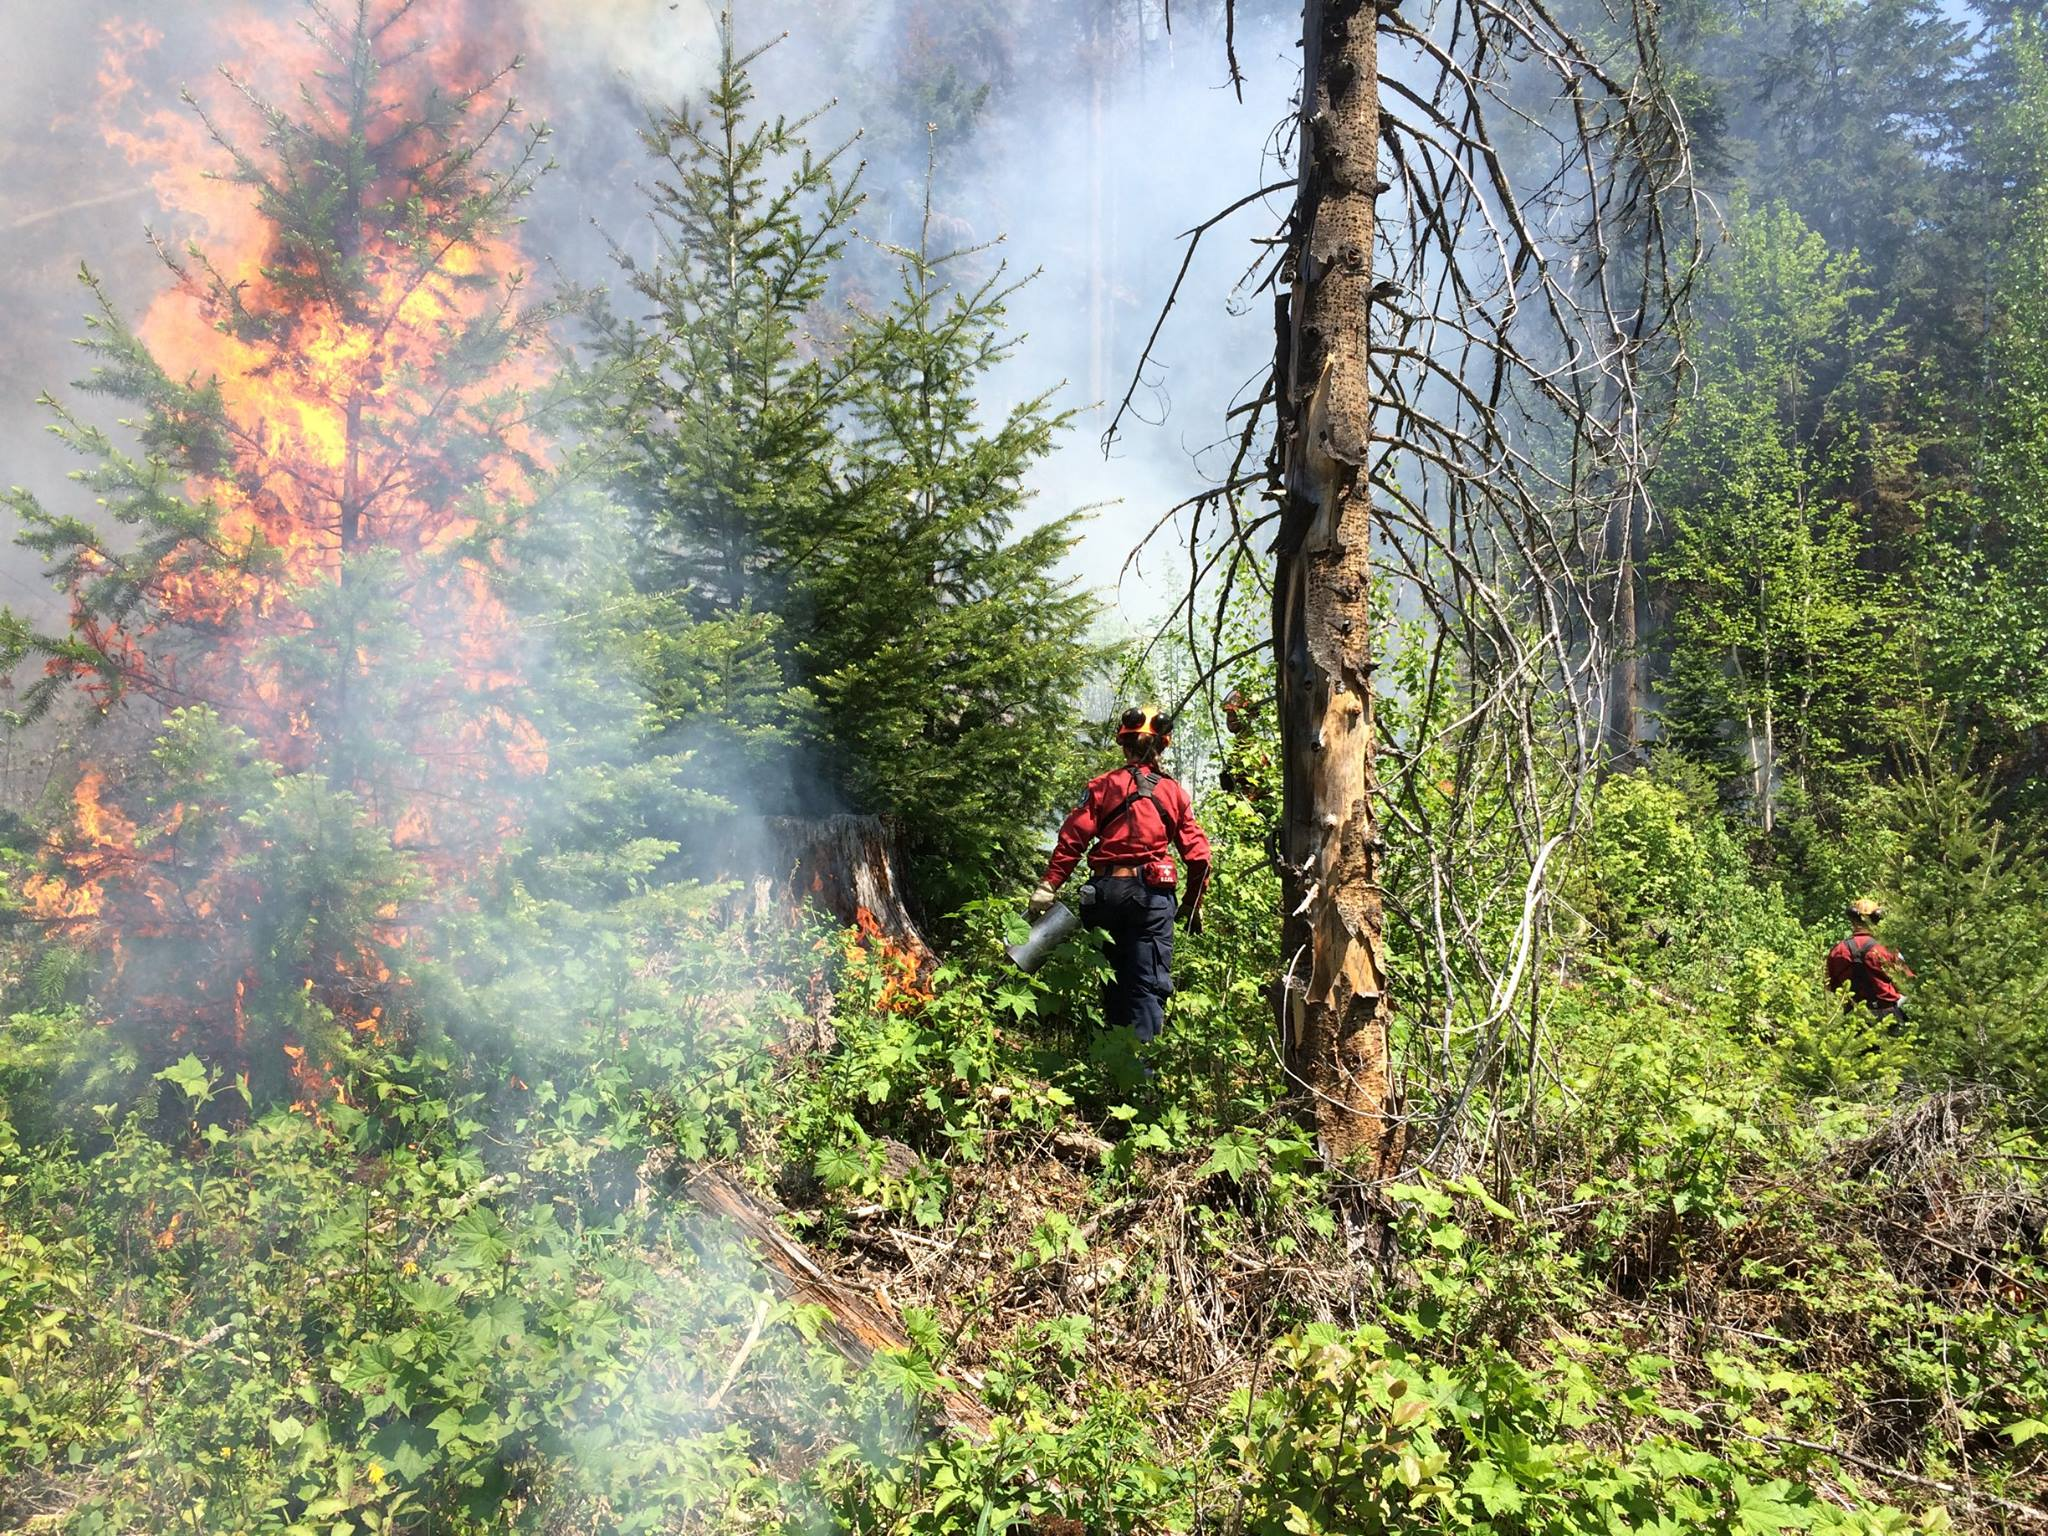 Human activity suspected in a quarter of fires started in the Kamloops Fire Centre this year